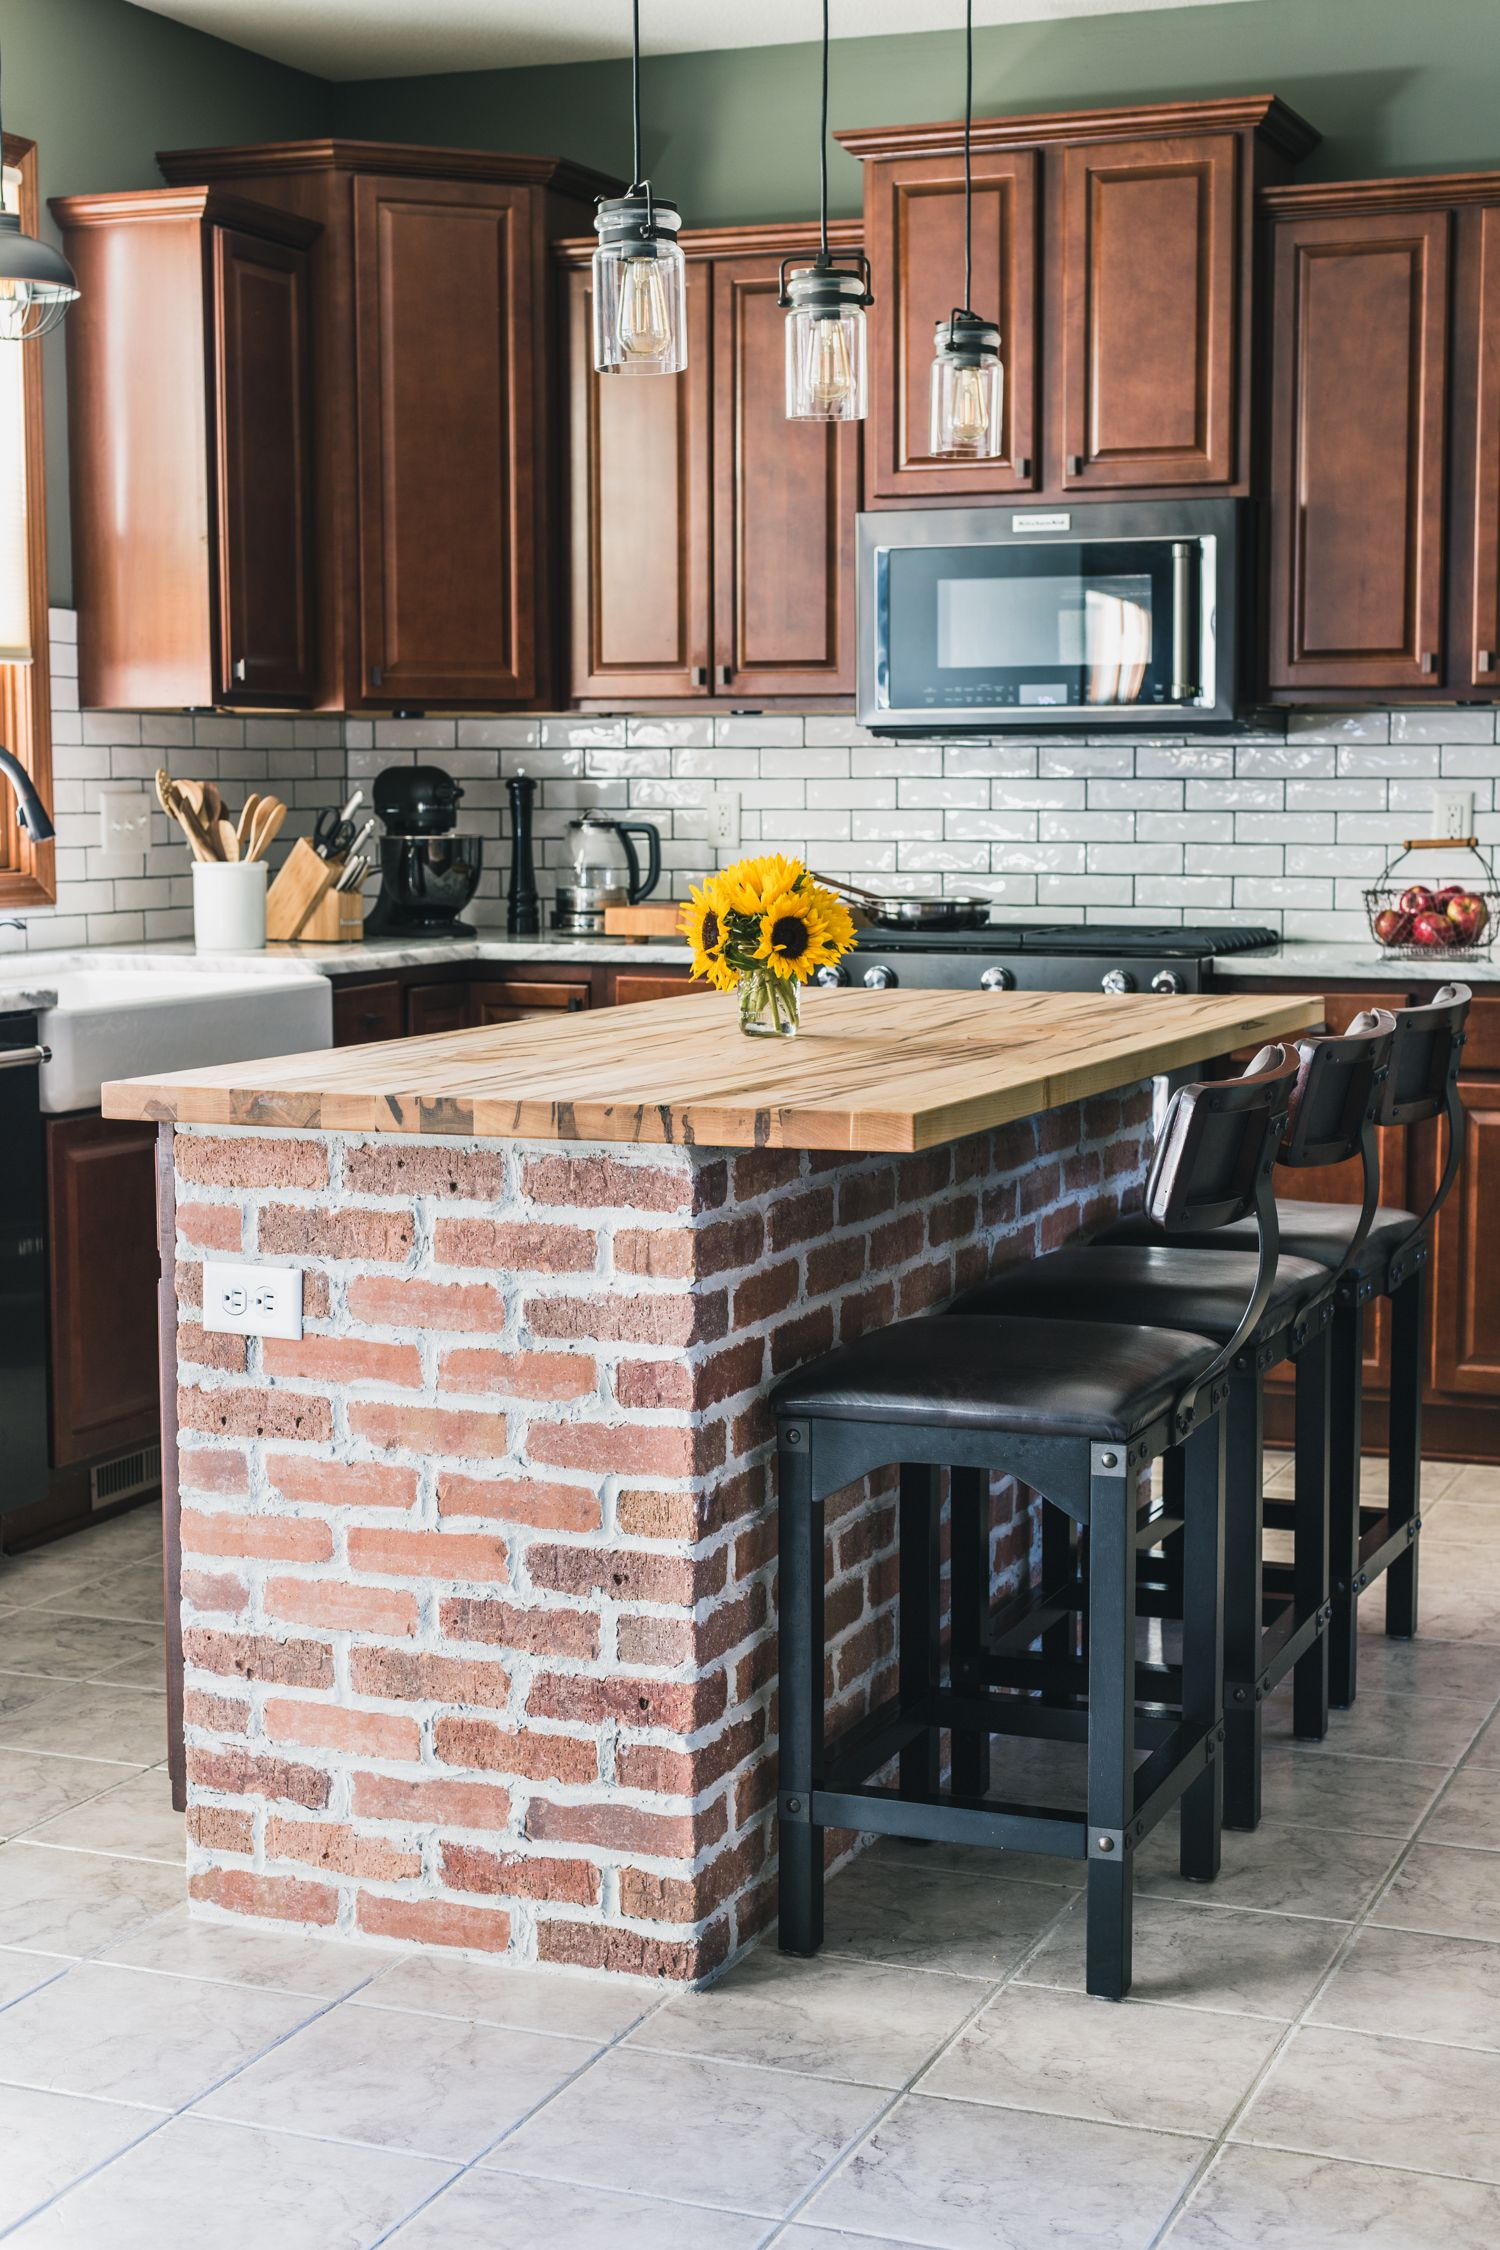 DIY Brick Kitchen Island + Behind the Scenes of our Kitchen ...